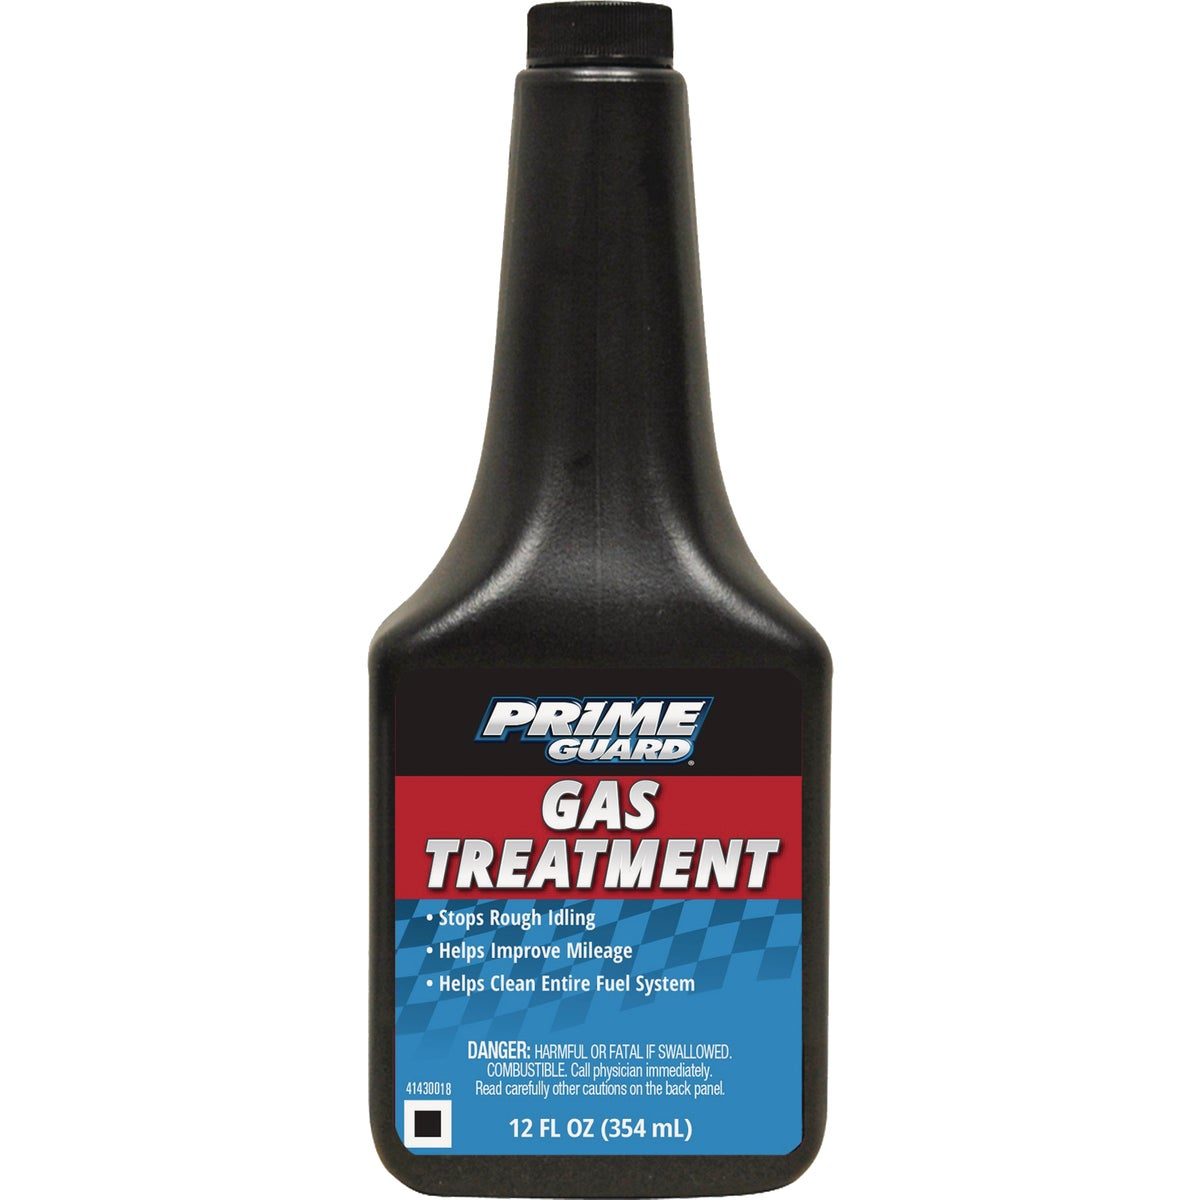 ZECOL GAS TREATMENT - ZECO41212 by Twinco Romax